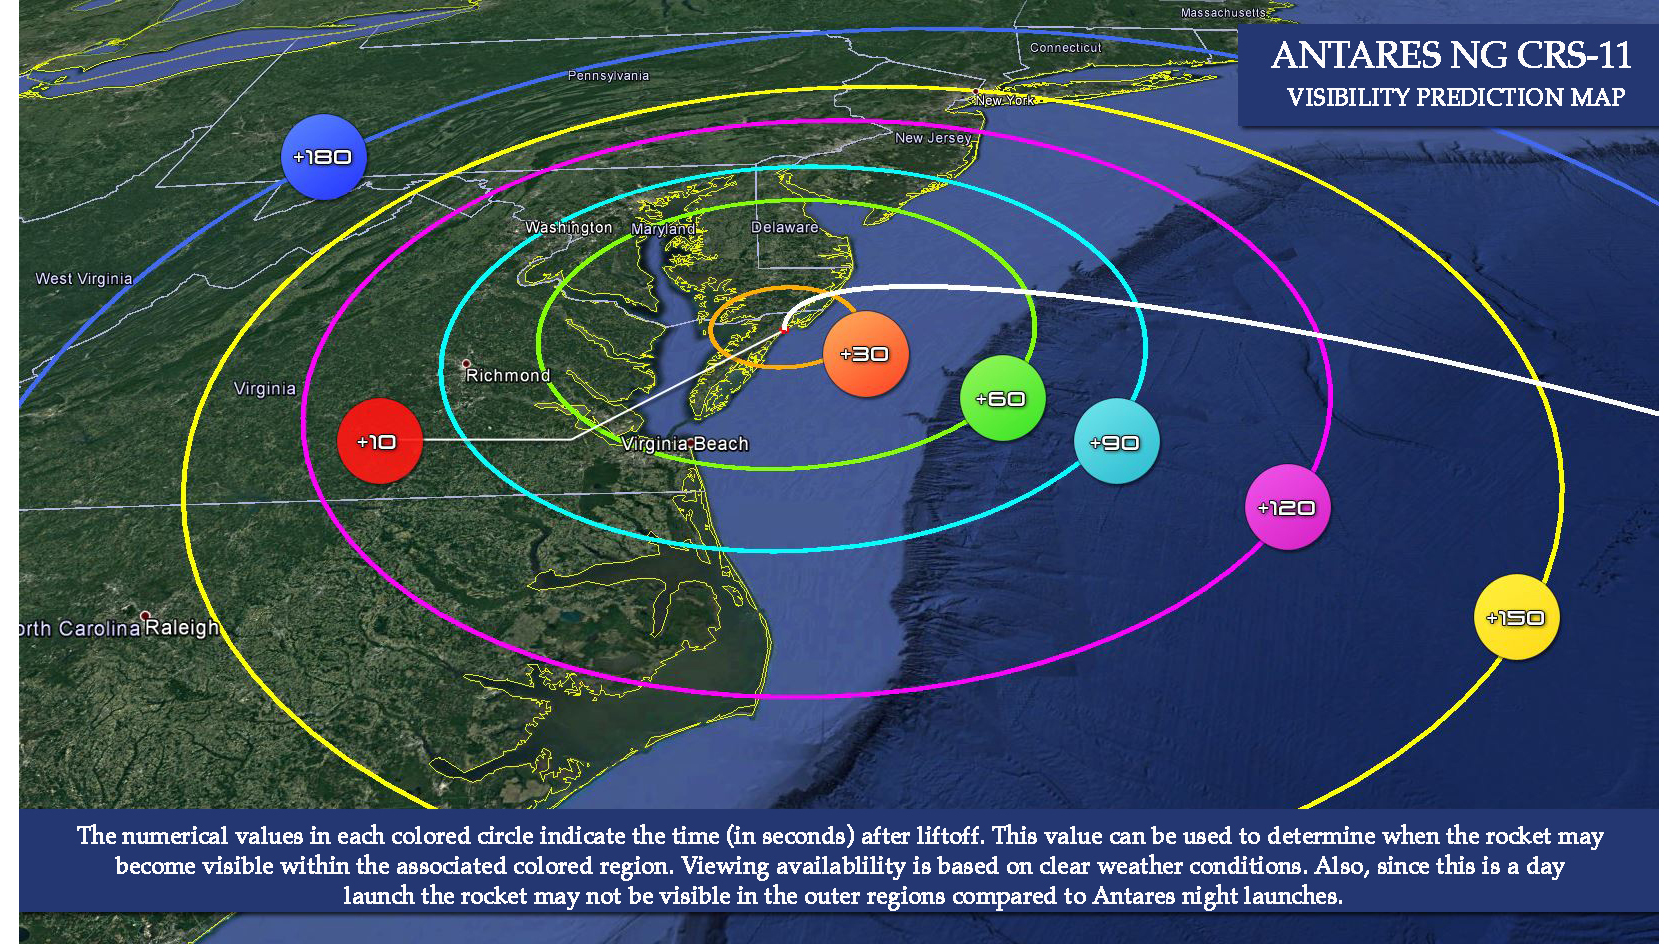 3 Things to know about the upcoming Antares launch